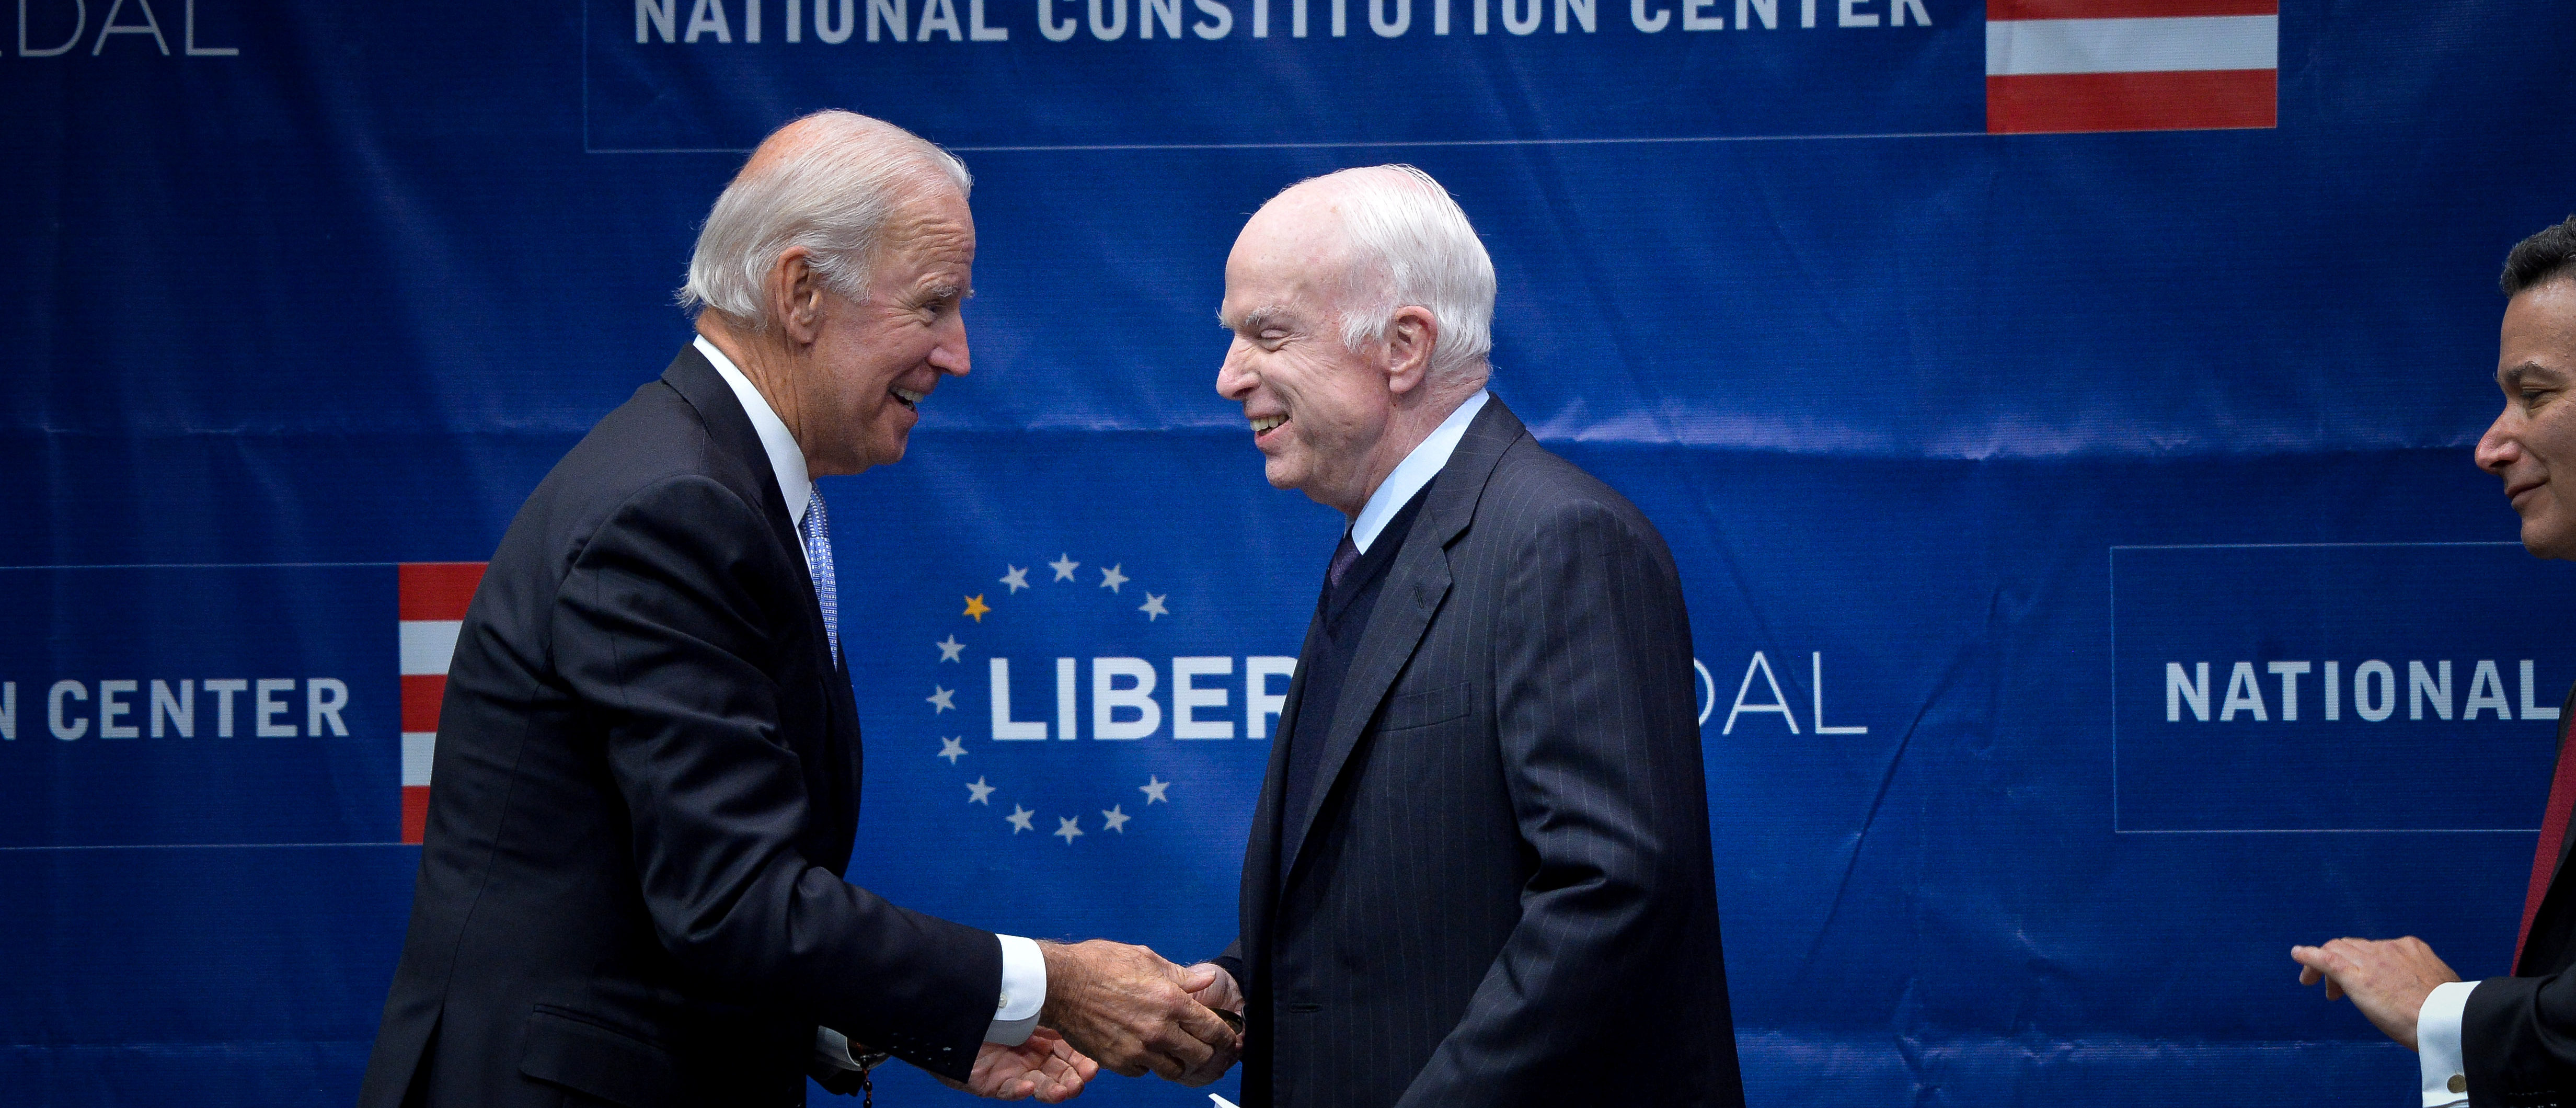 U.S. Senator John McCain (R-AZ) is awarded the 2017 Liberty Medal by former U.S. Vice President Joe Biden at the Independence Hall in Philadelphia, Pennsylvania, U.S., October 16, 2017. REUTERS/Charles Mostoller - RC1F9B30E210